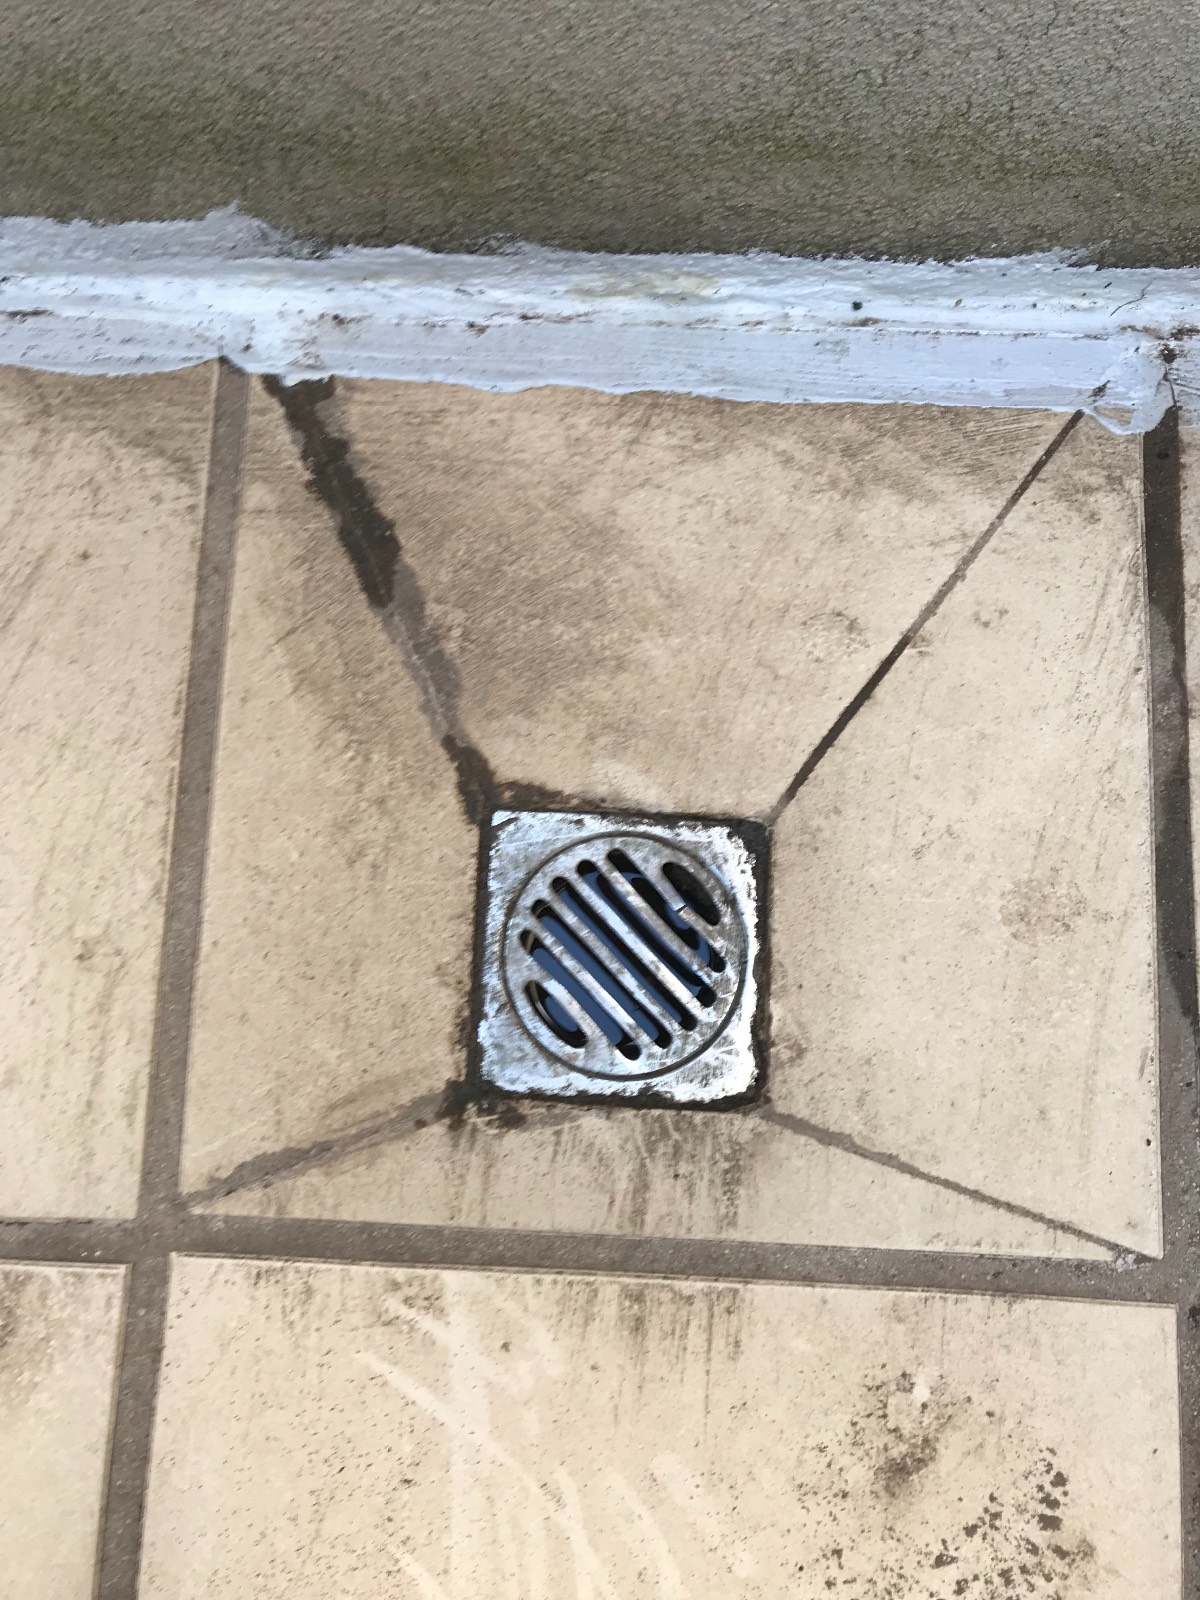 How to remove the grill for a drain cover